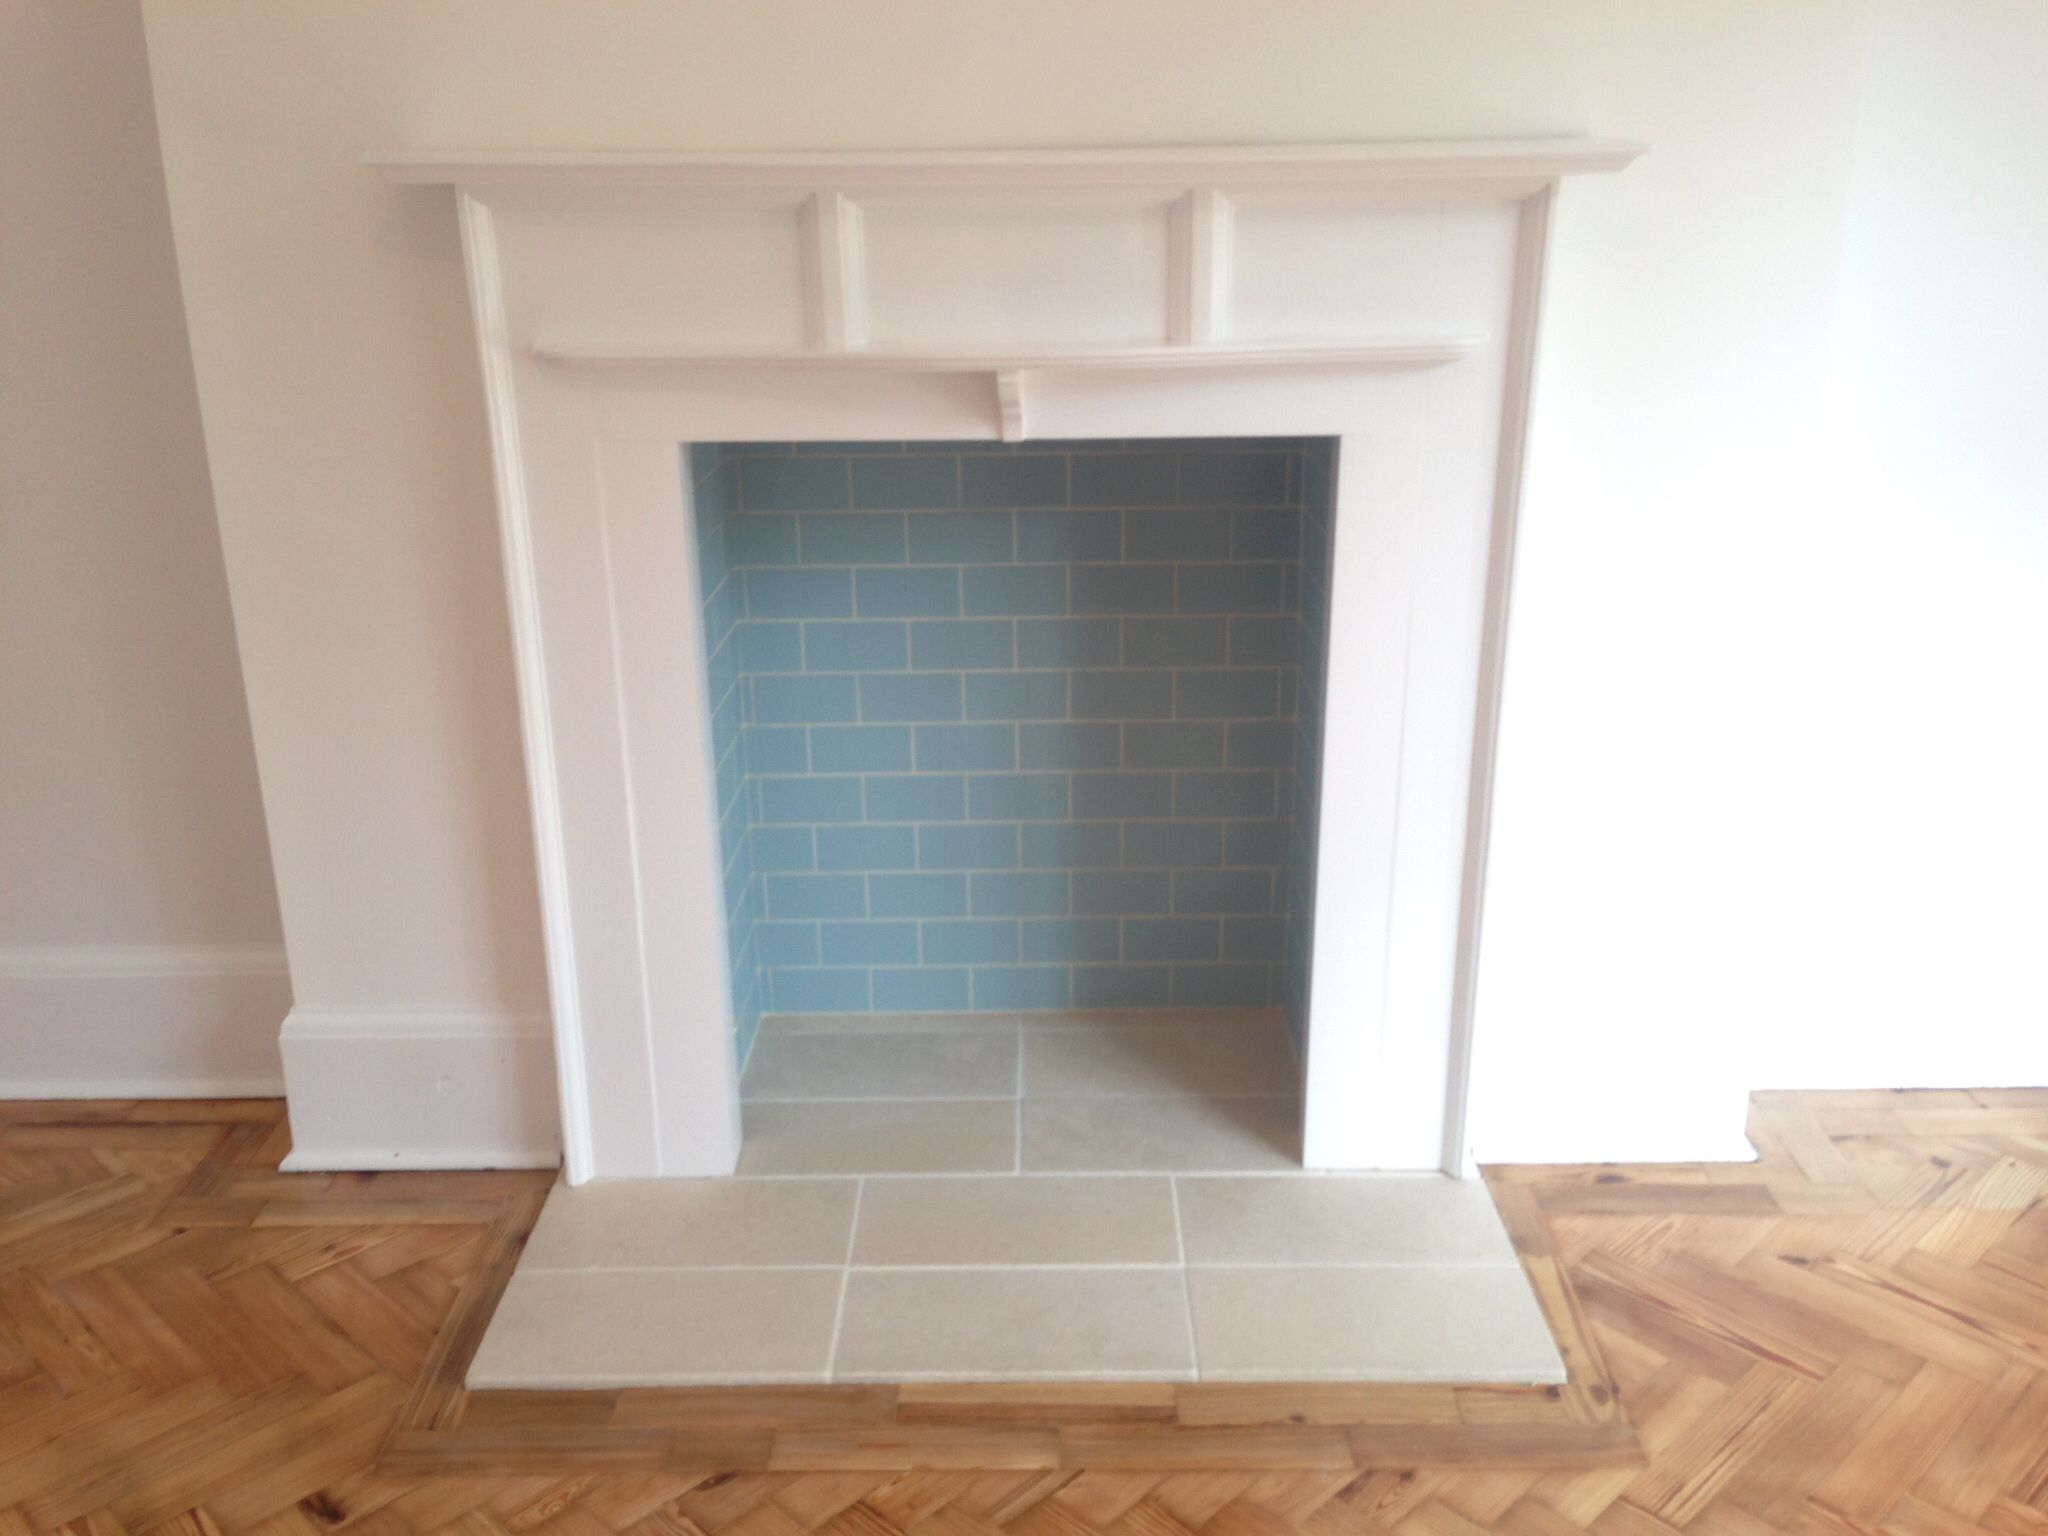 Fireplace Rebuild To House A Freestanding Wood Burner The